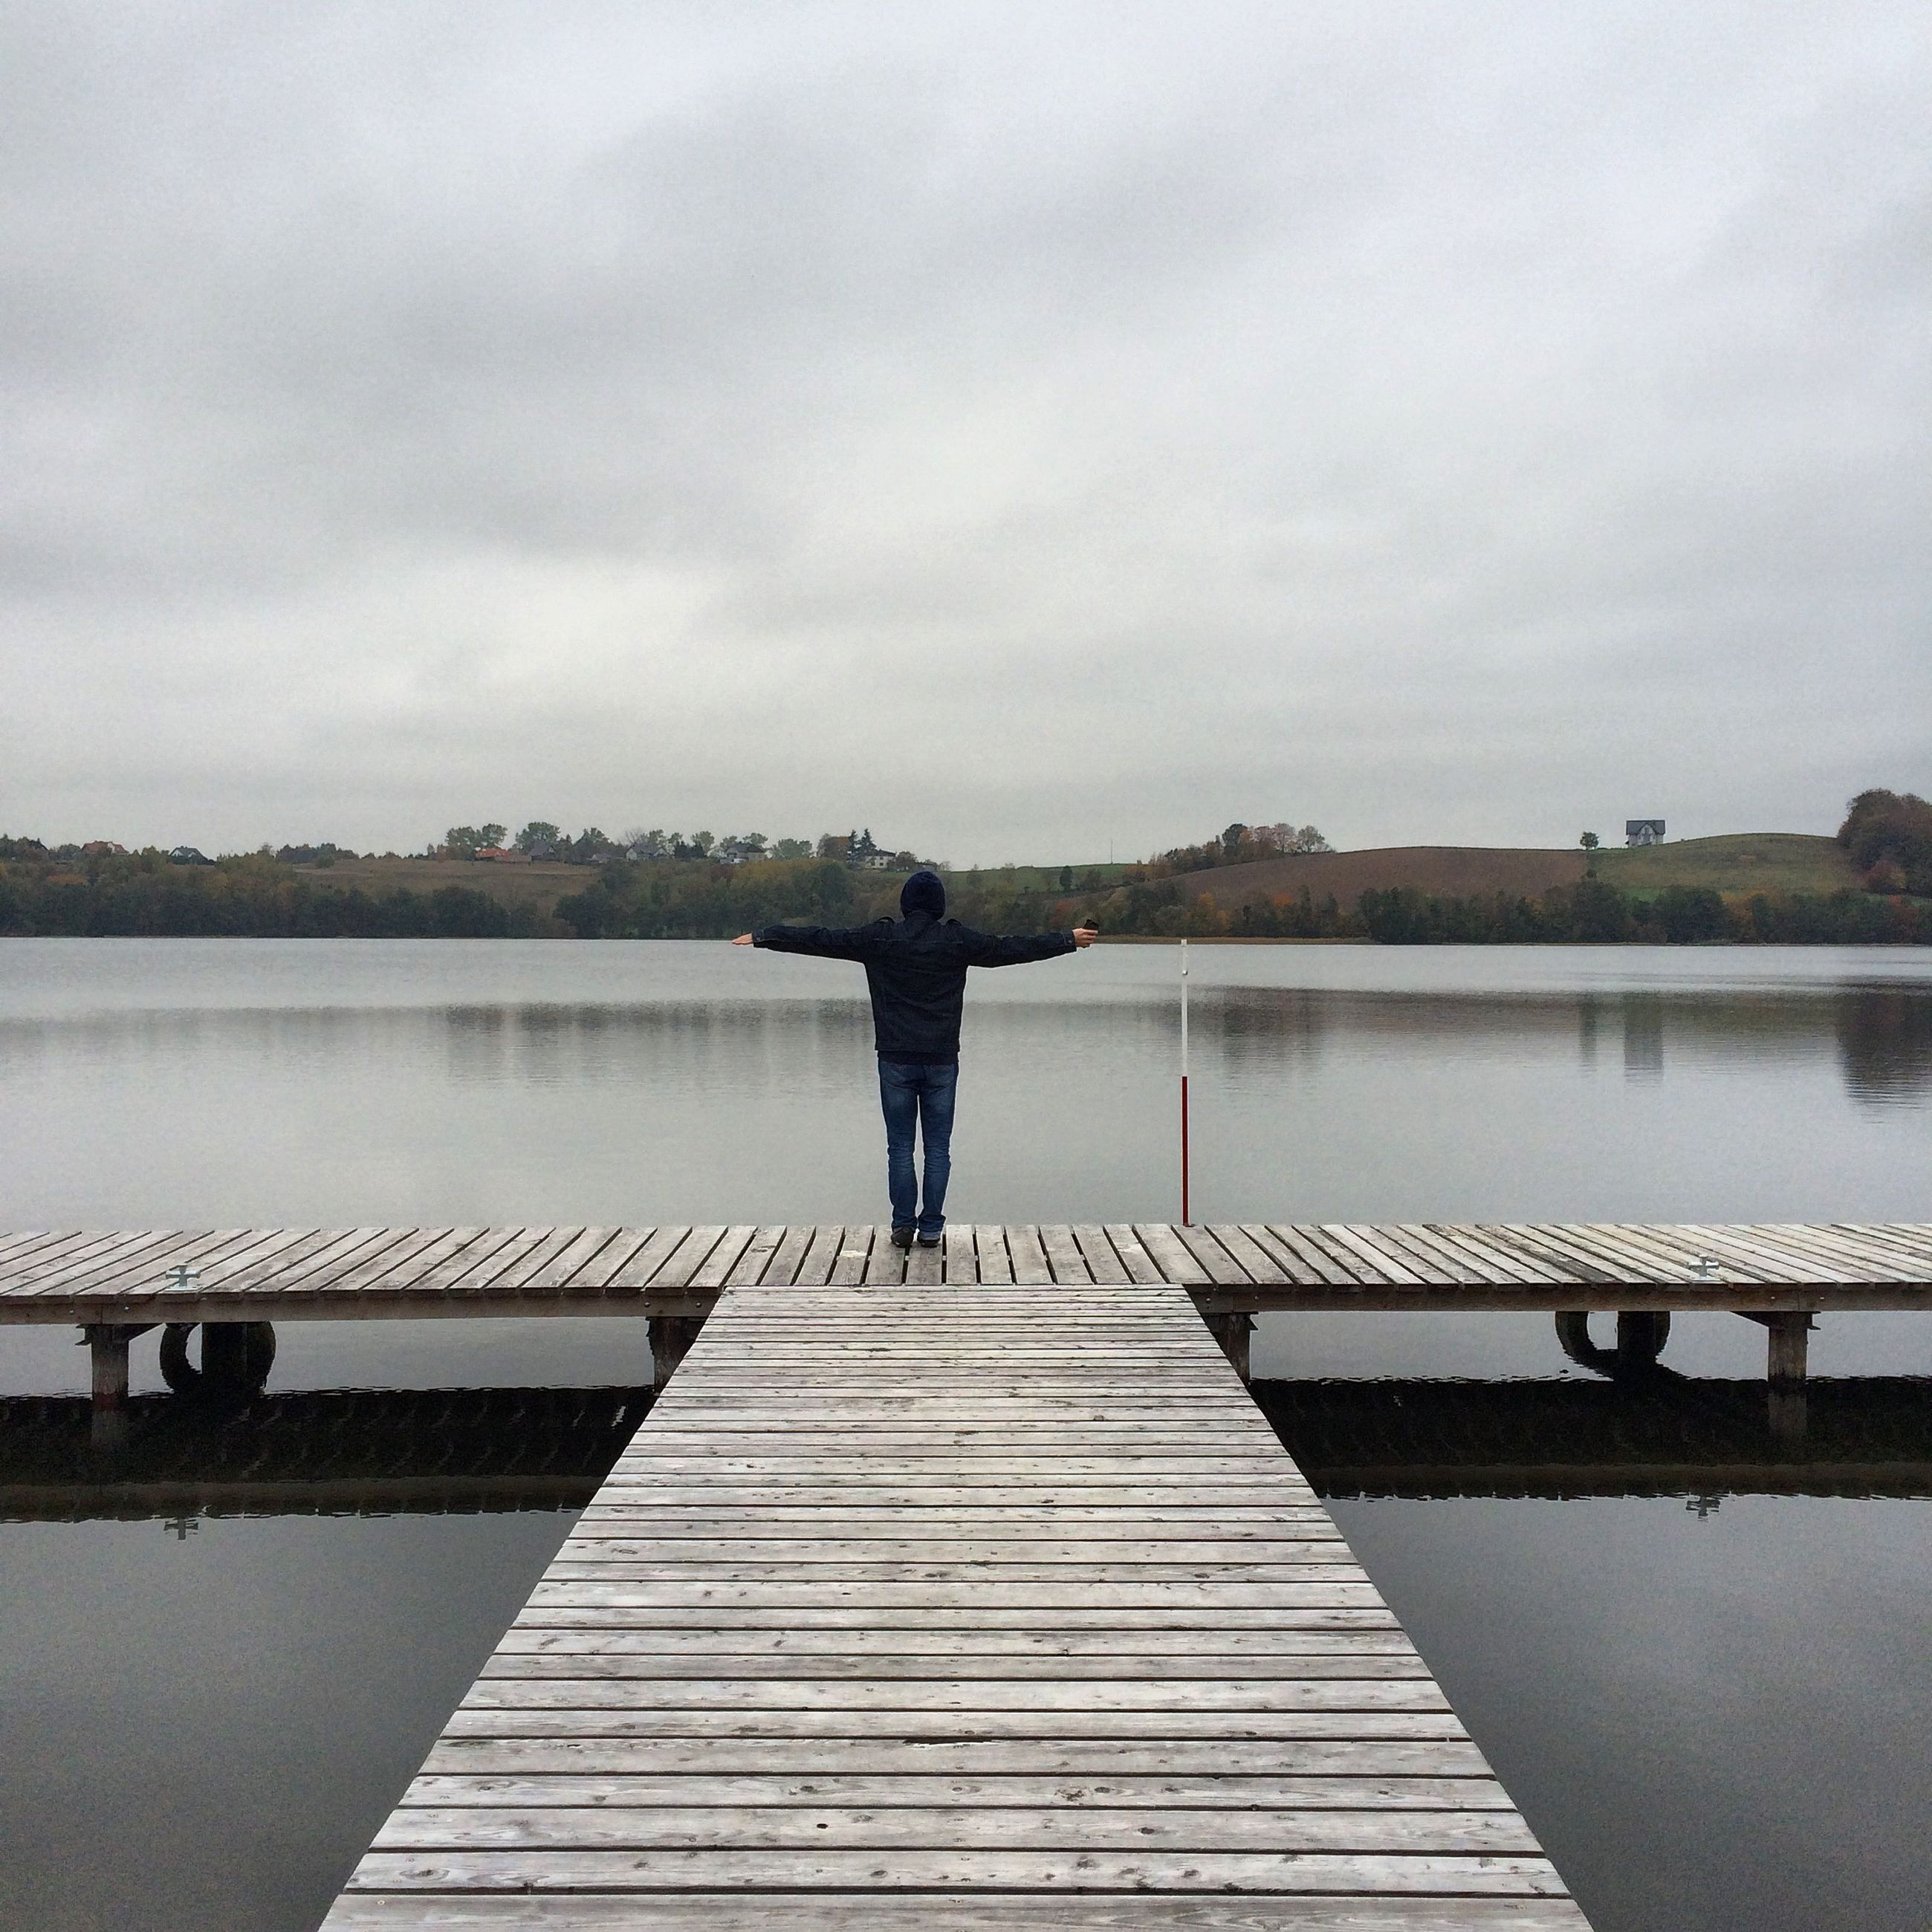 water, rear view, sky, full length, railing, standing, pier, lifestyles, built structure, leisure activity, lake, architecture, river, cloud - sky, tranquility, men, person, casual clothing